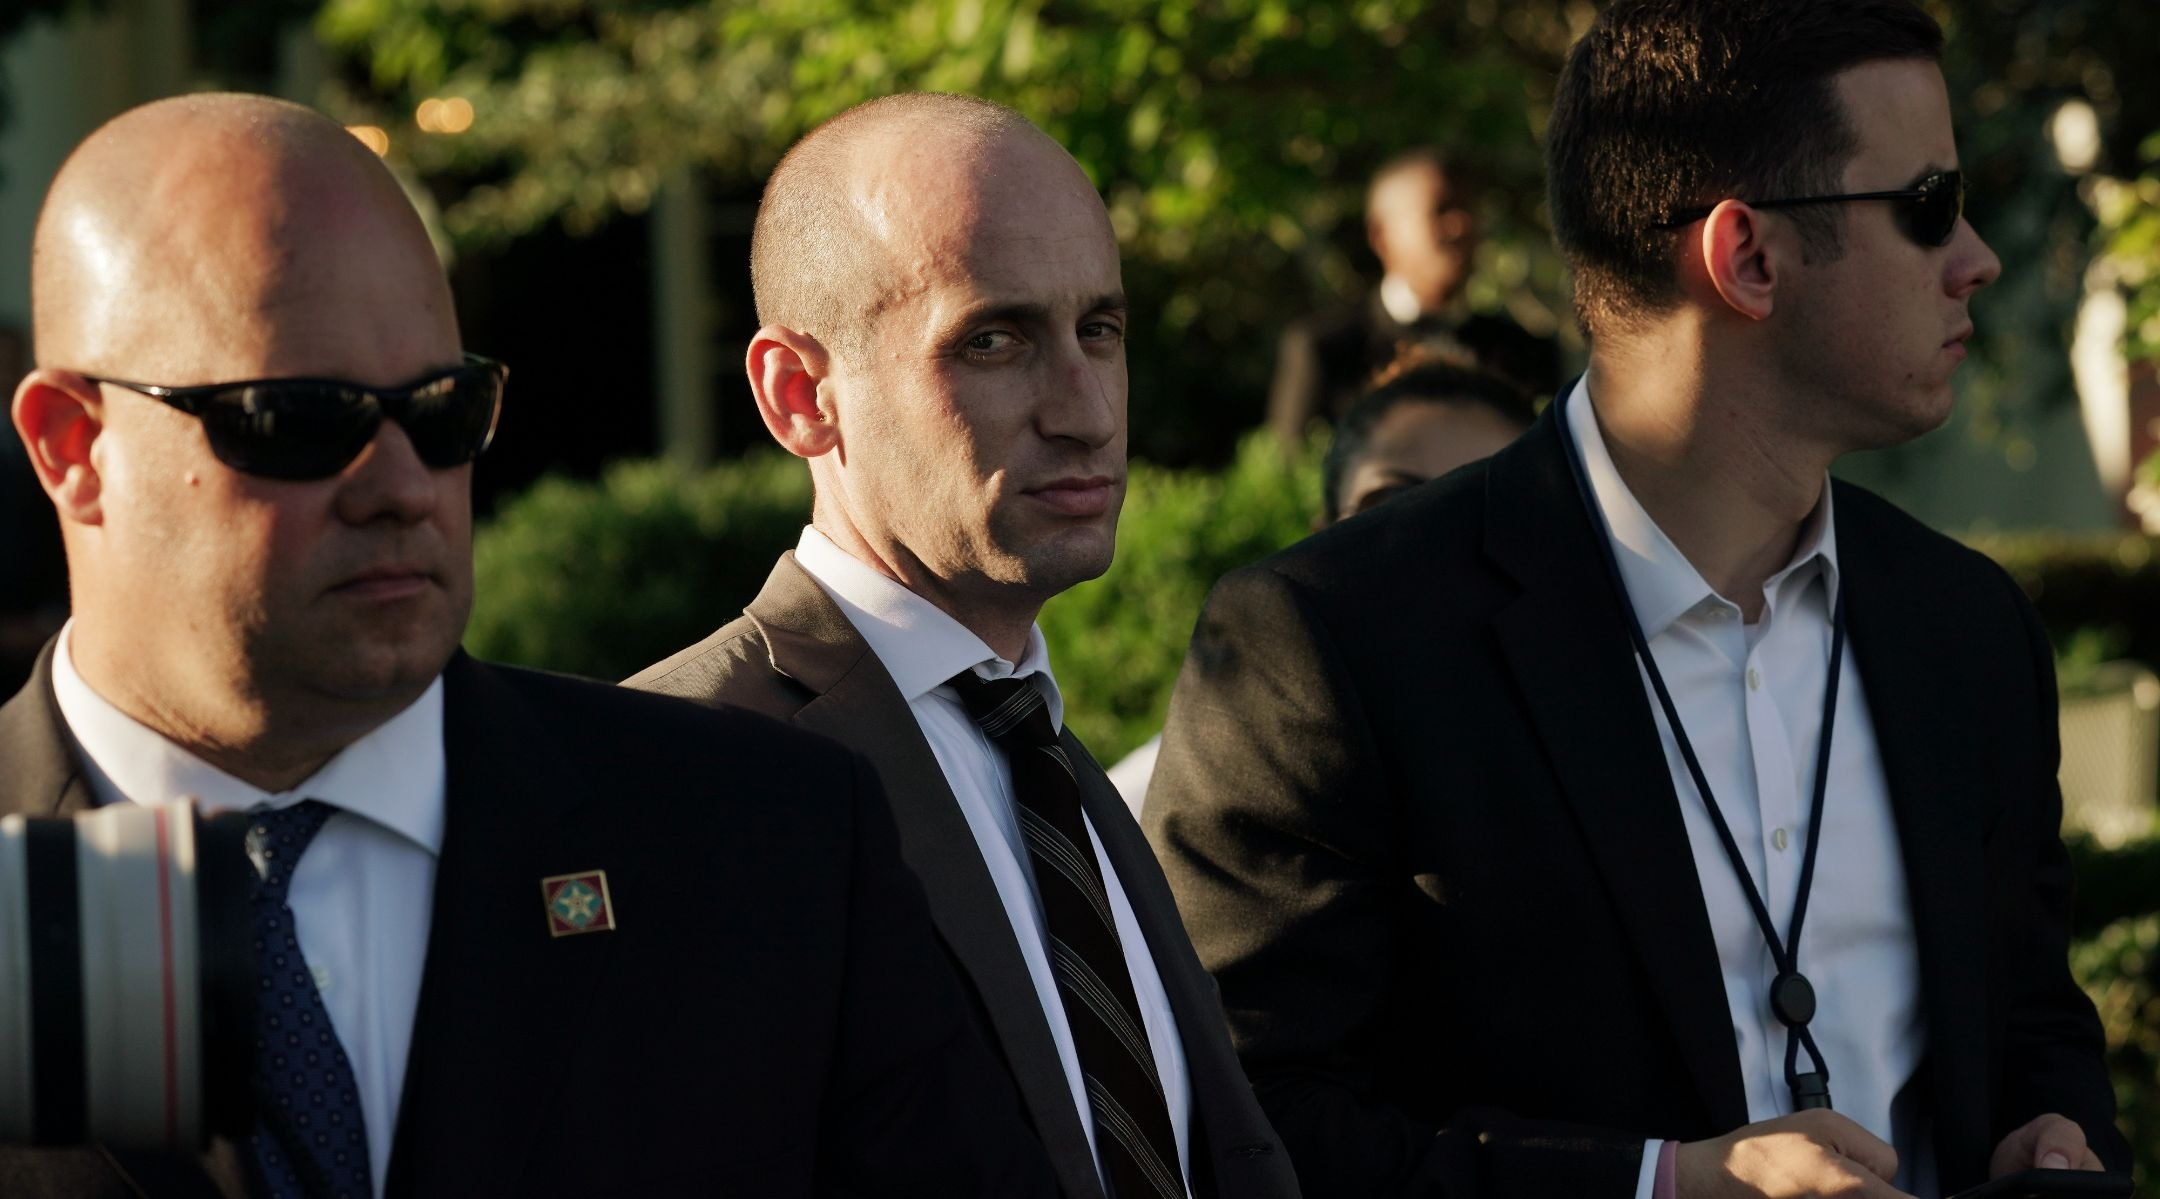 Stephen Miller is reportedly readying immigration orders for a second Trump term. He also advanced...